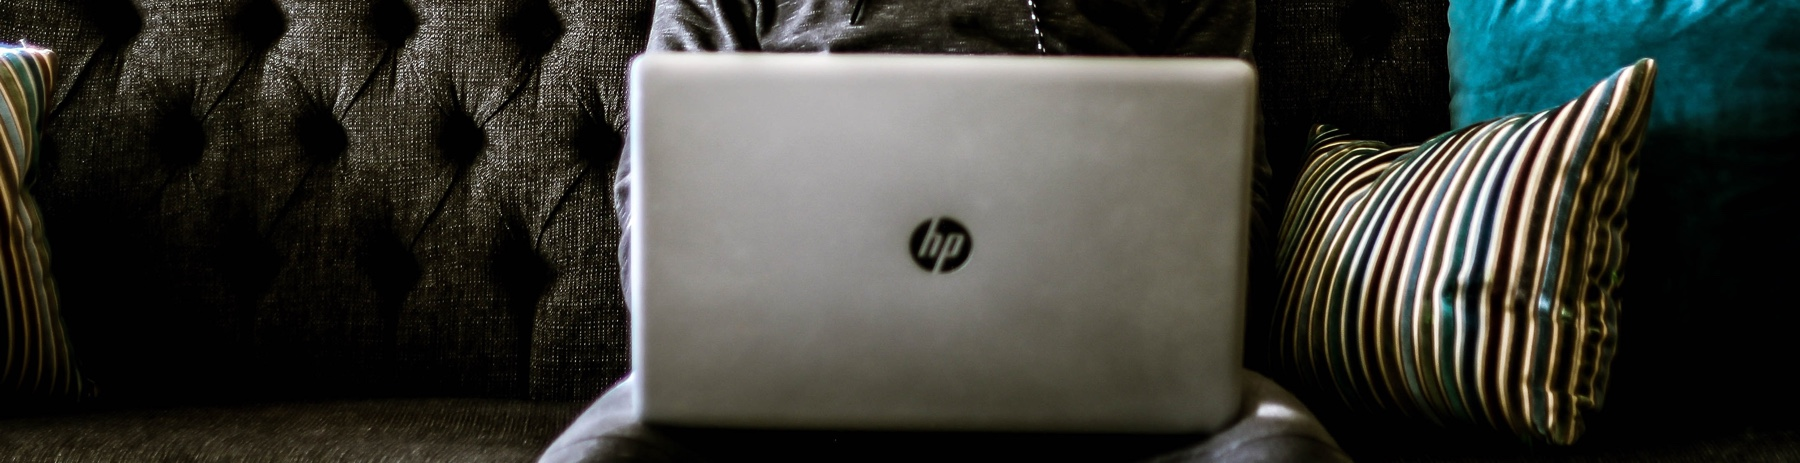 Can HP Survive its Board's Mischief?